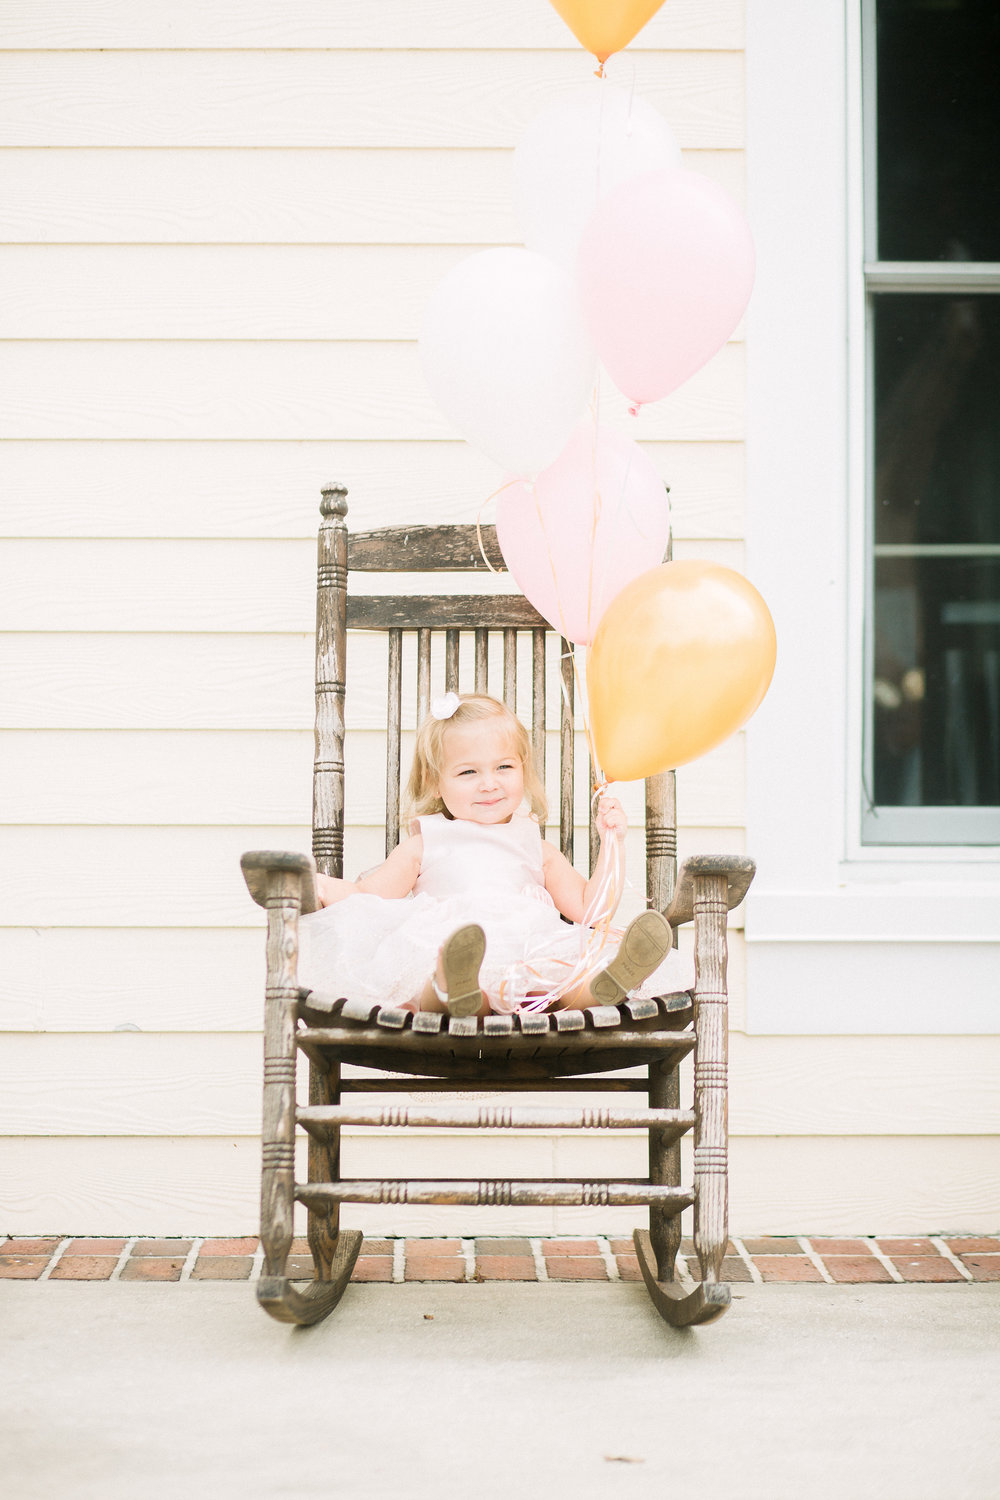 Orlando Family Photographer | Chantell Cruz Photography